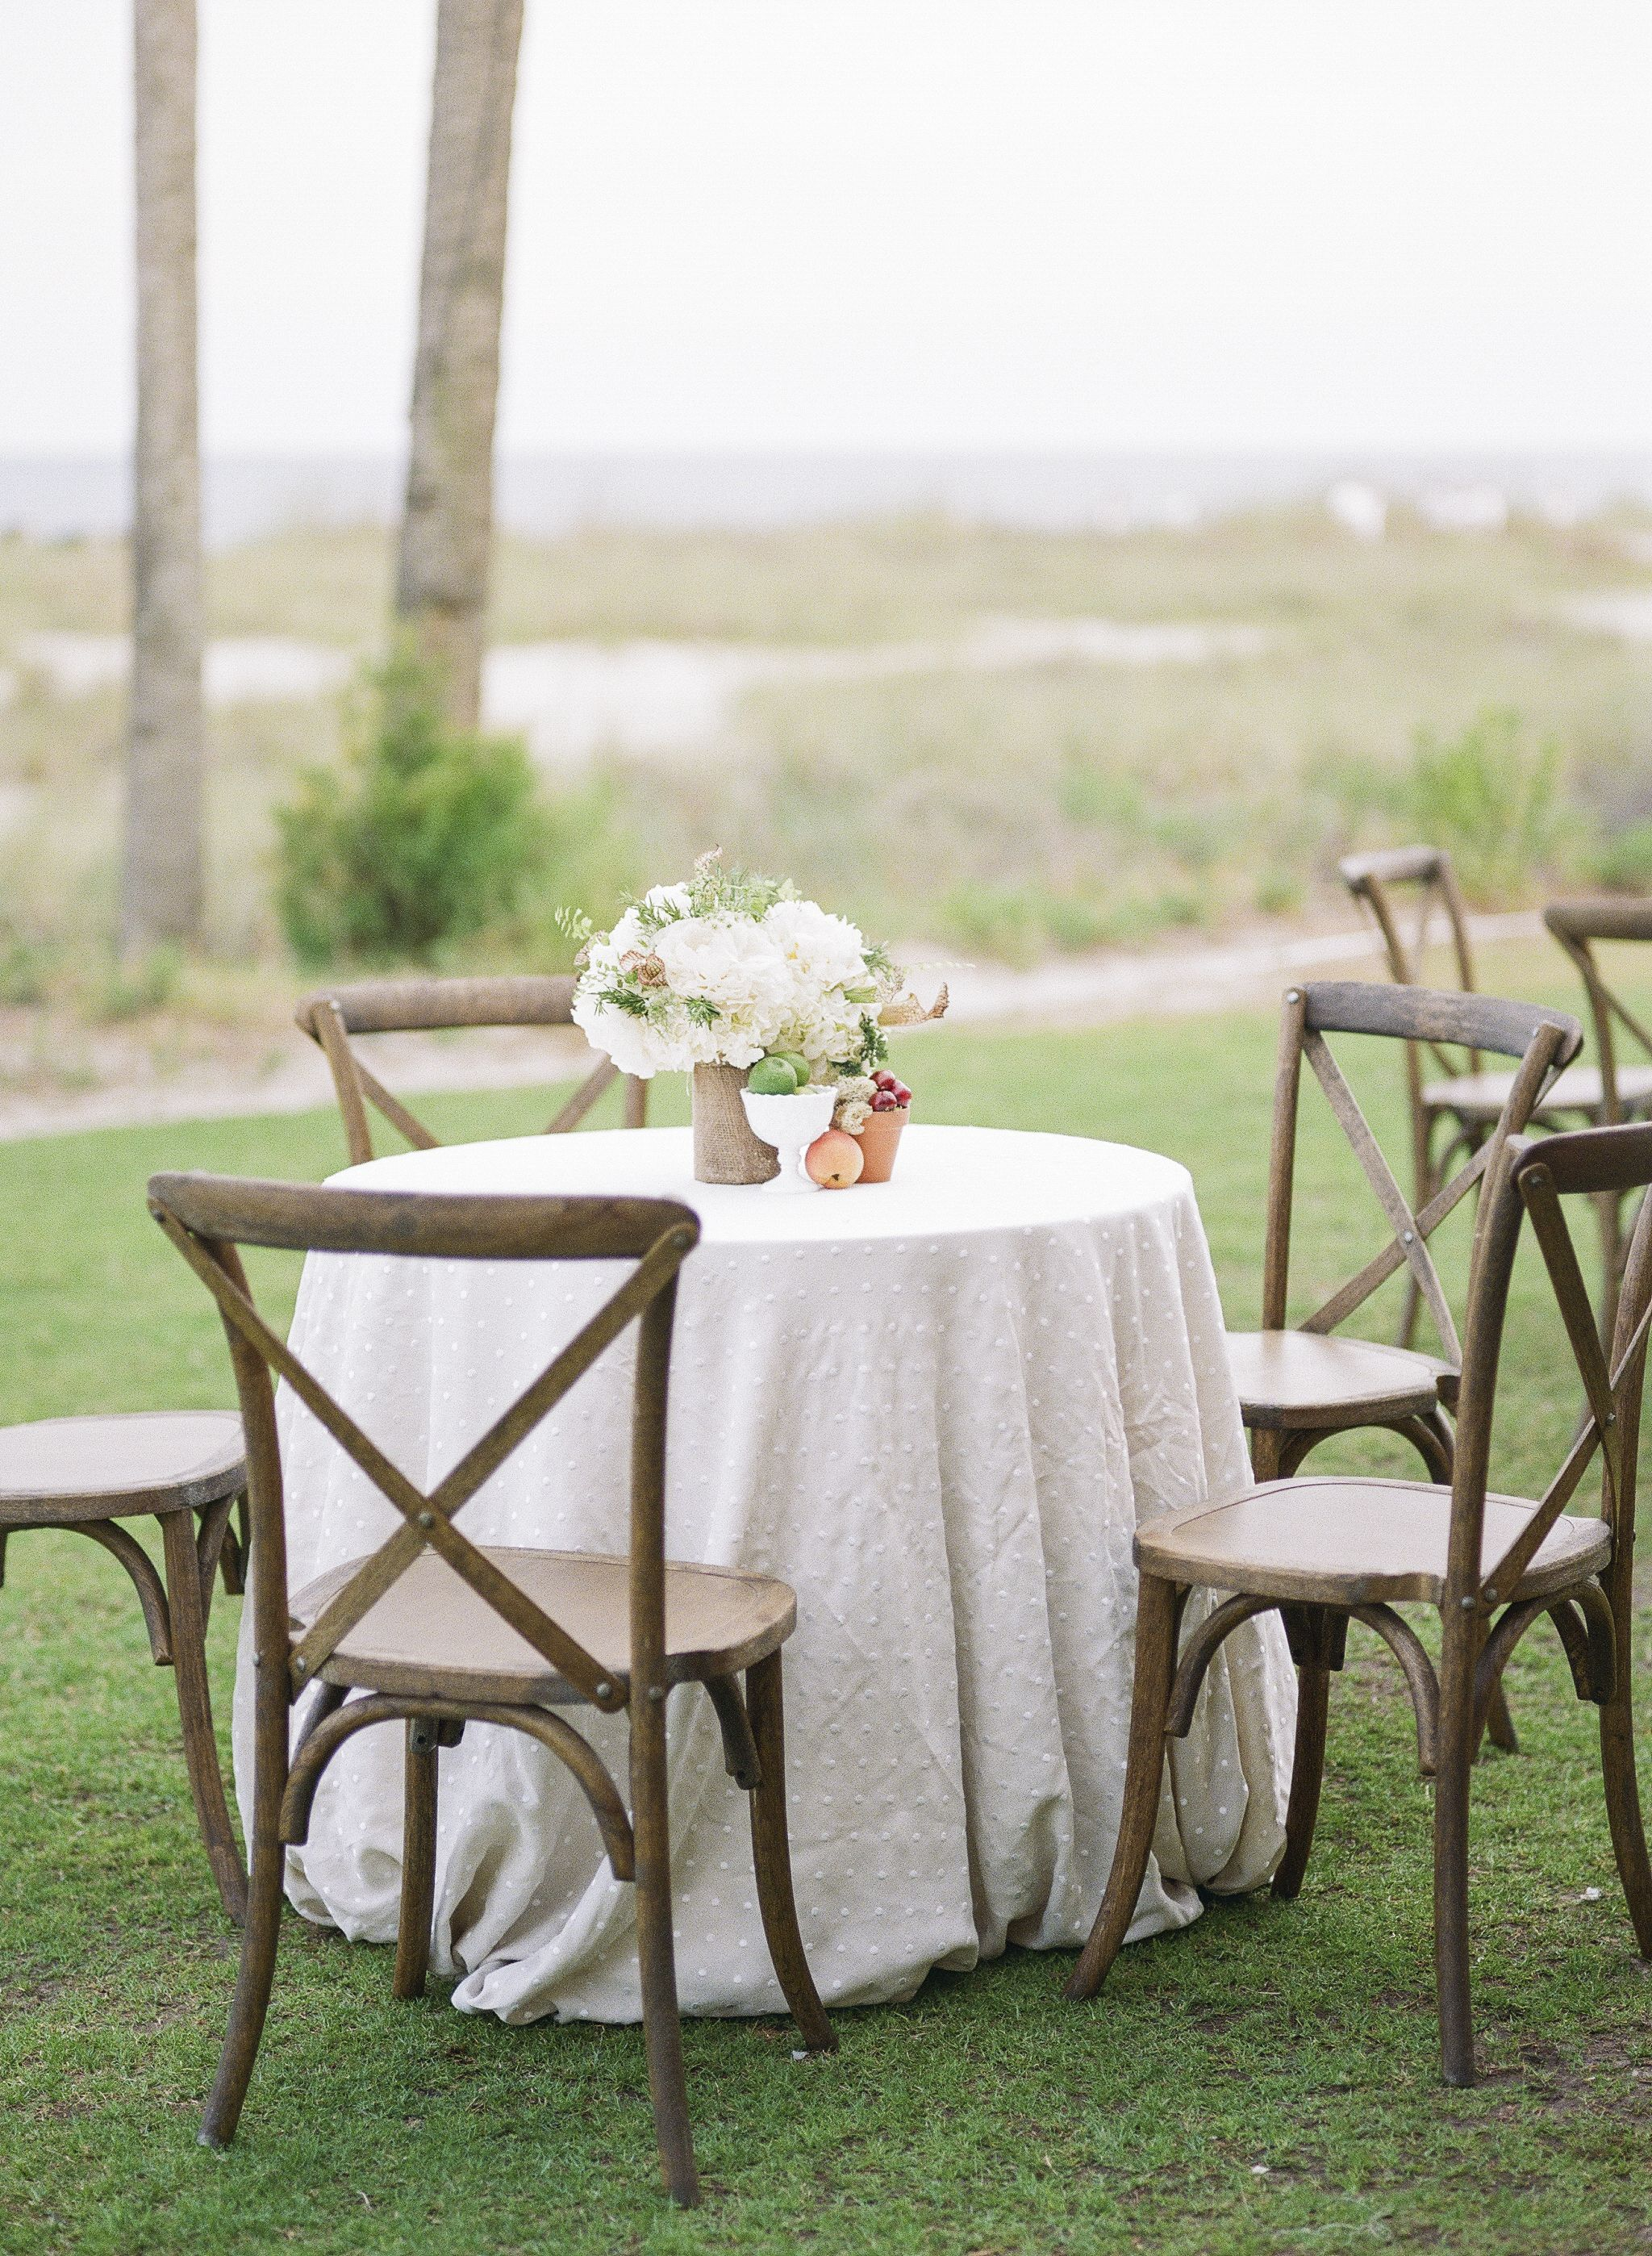 Wooden Cross Back Chairs at Neutral Table | Ideas | Pinterest ...